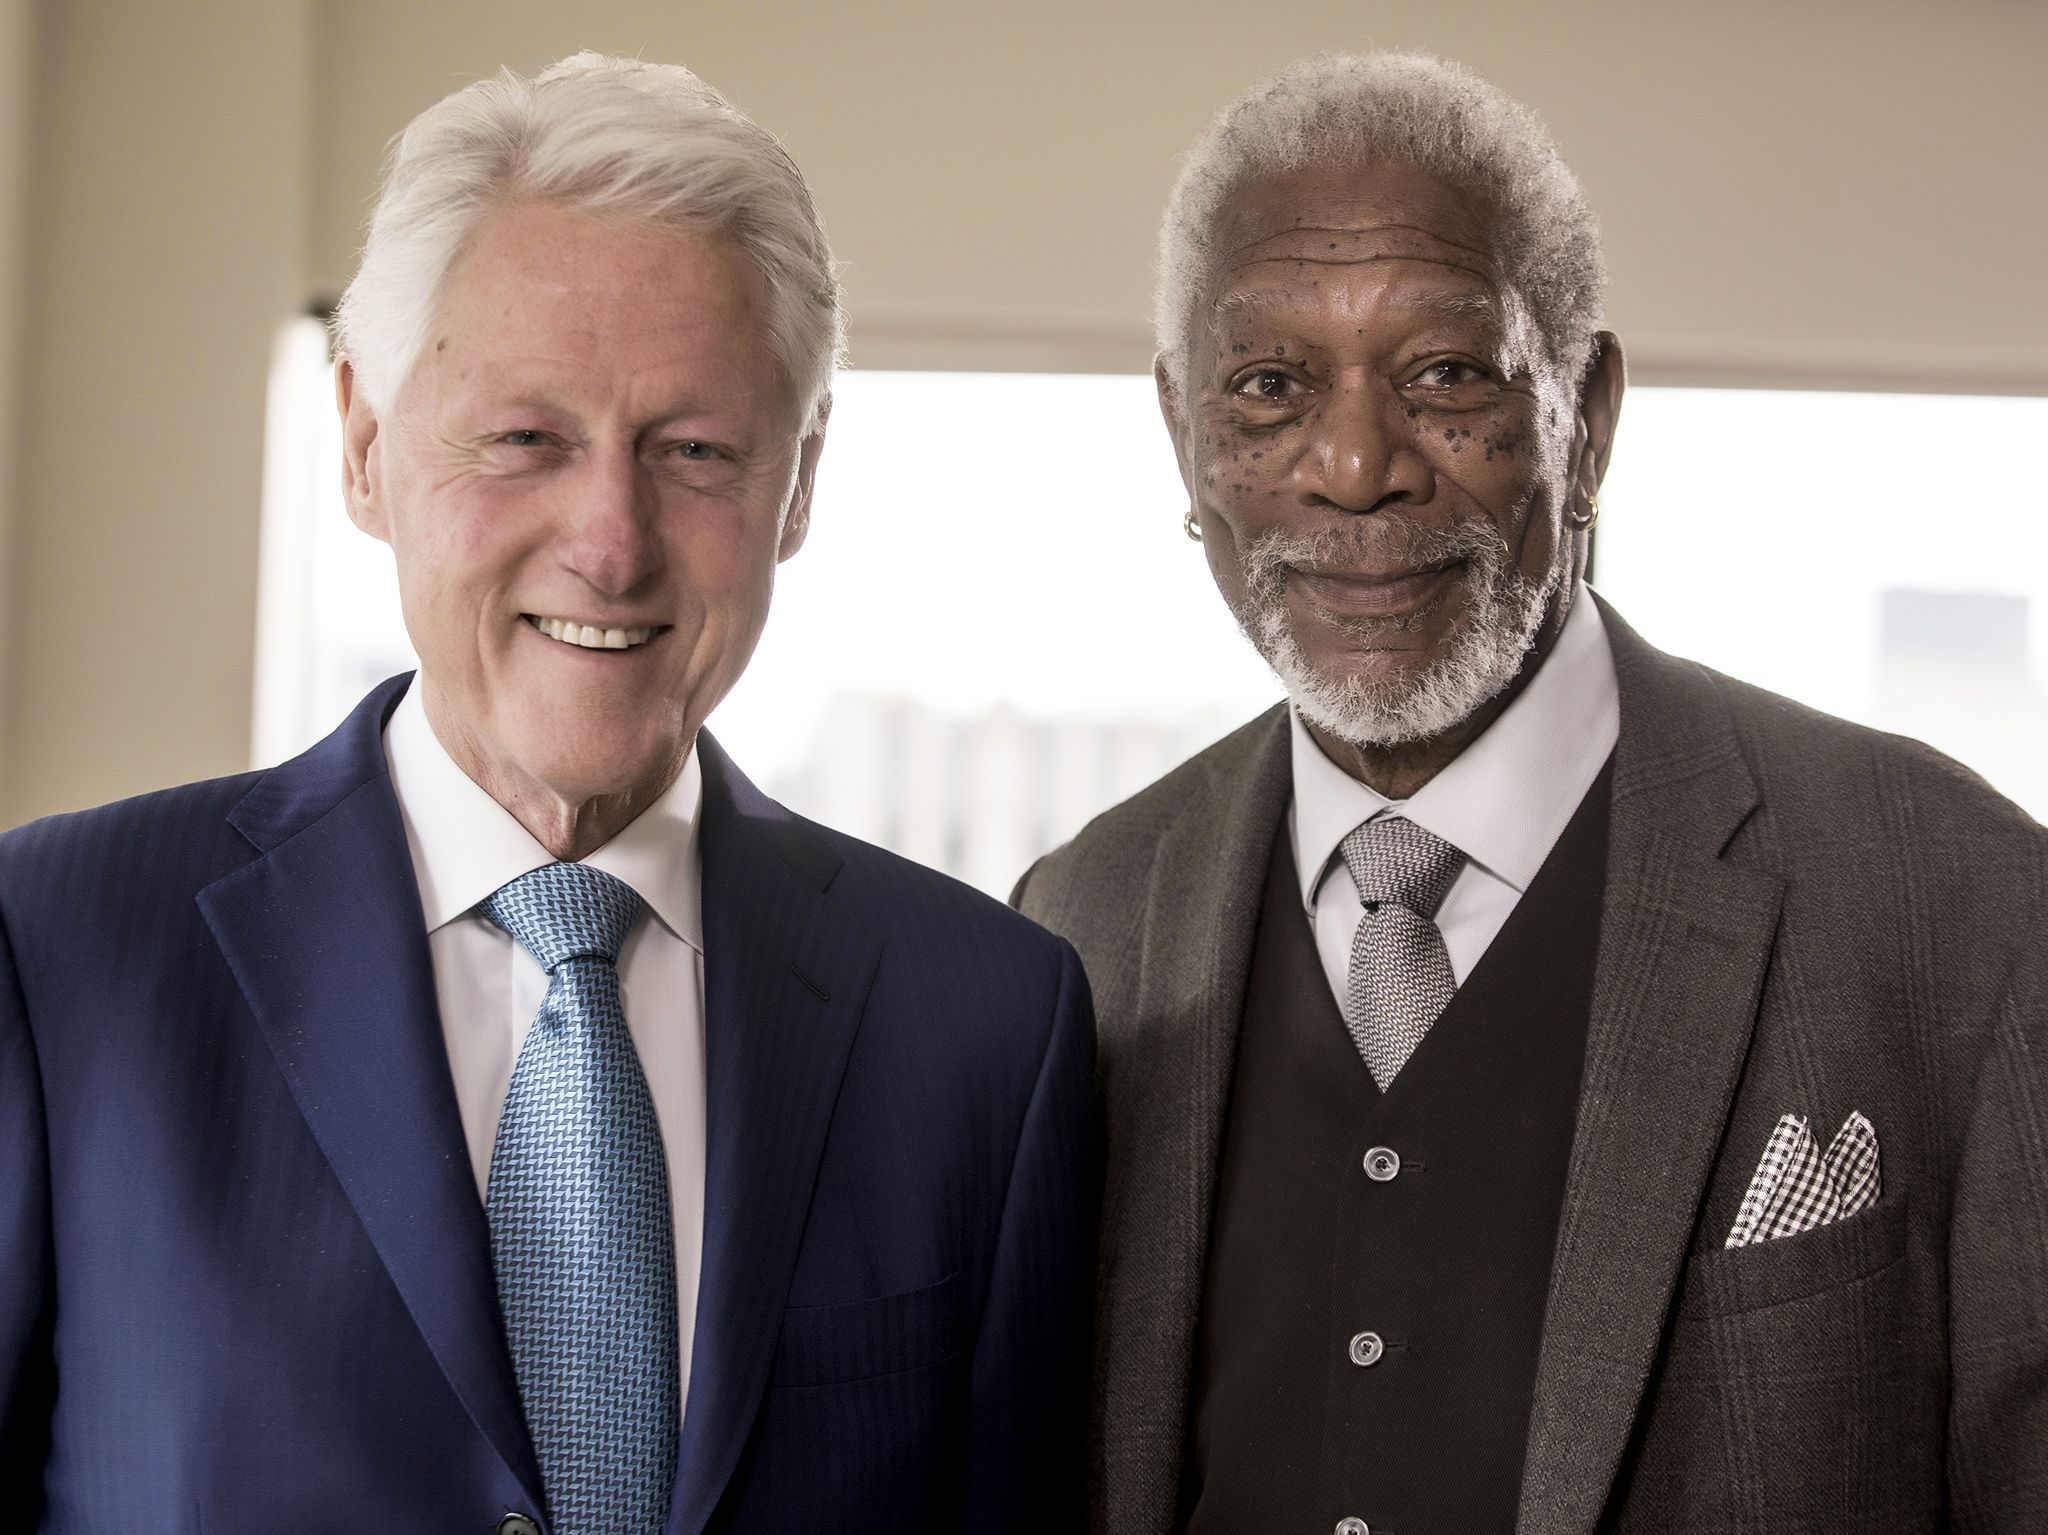 New York City:  President Bill Clinton poses with host Morgan Freeman as seen on National... [Foto del giorno - gennaio 2018]